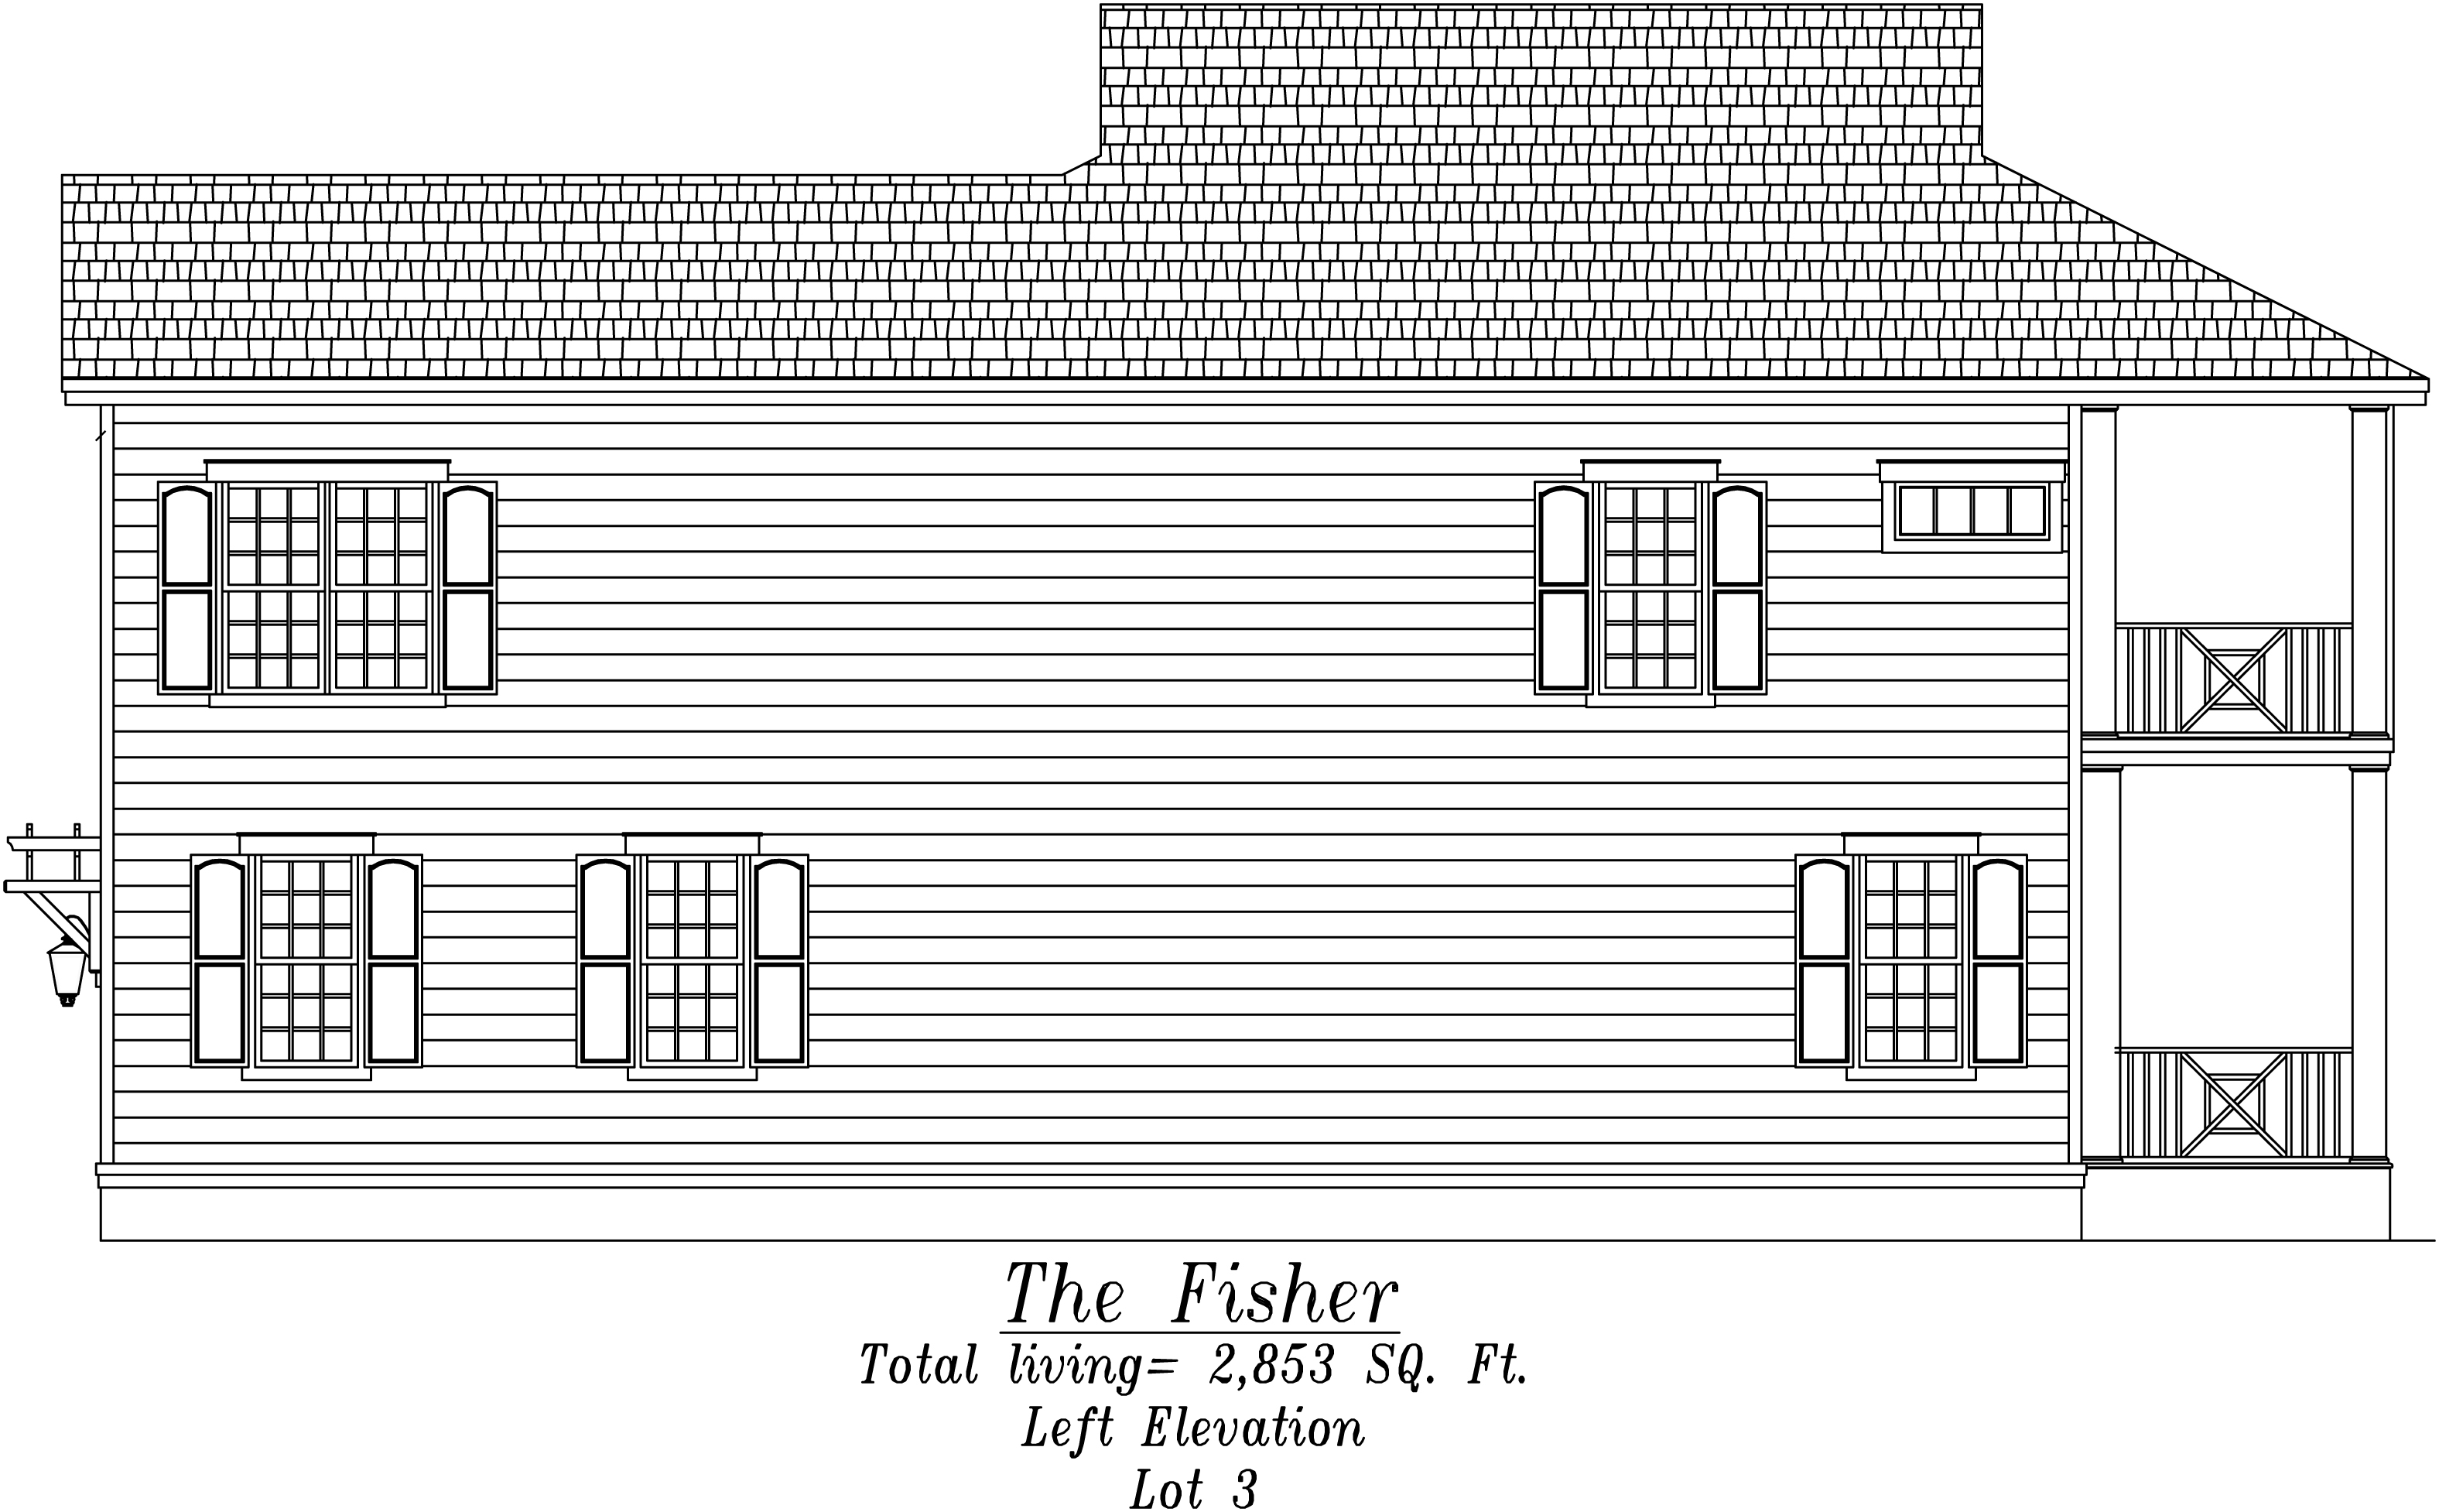 Fisher Left Elevation